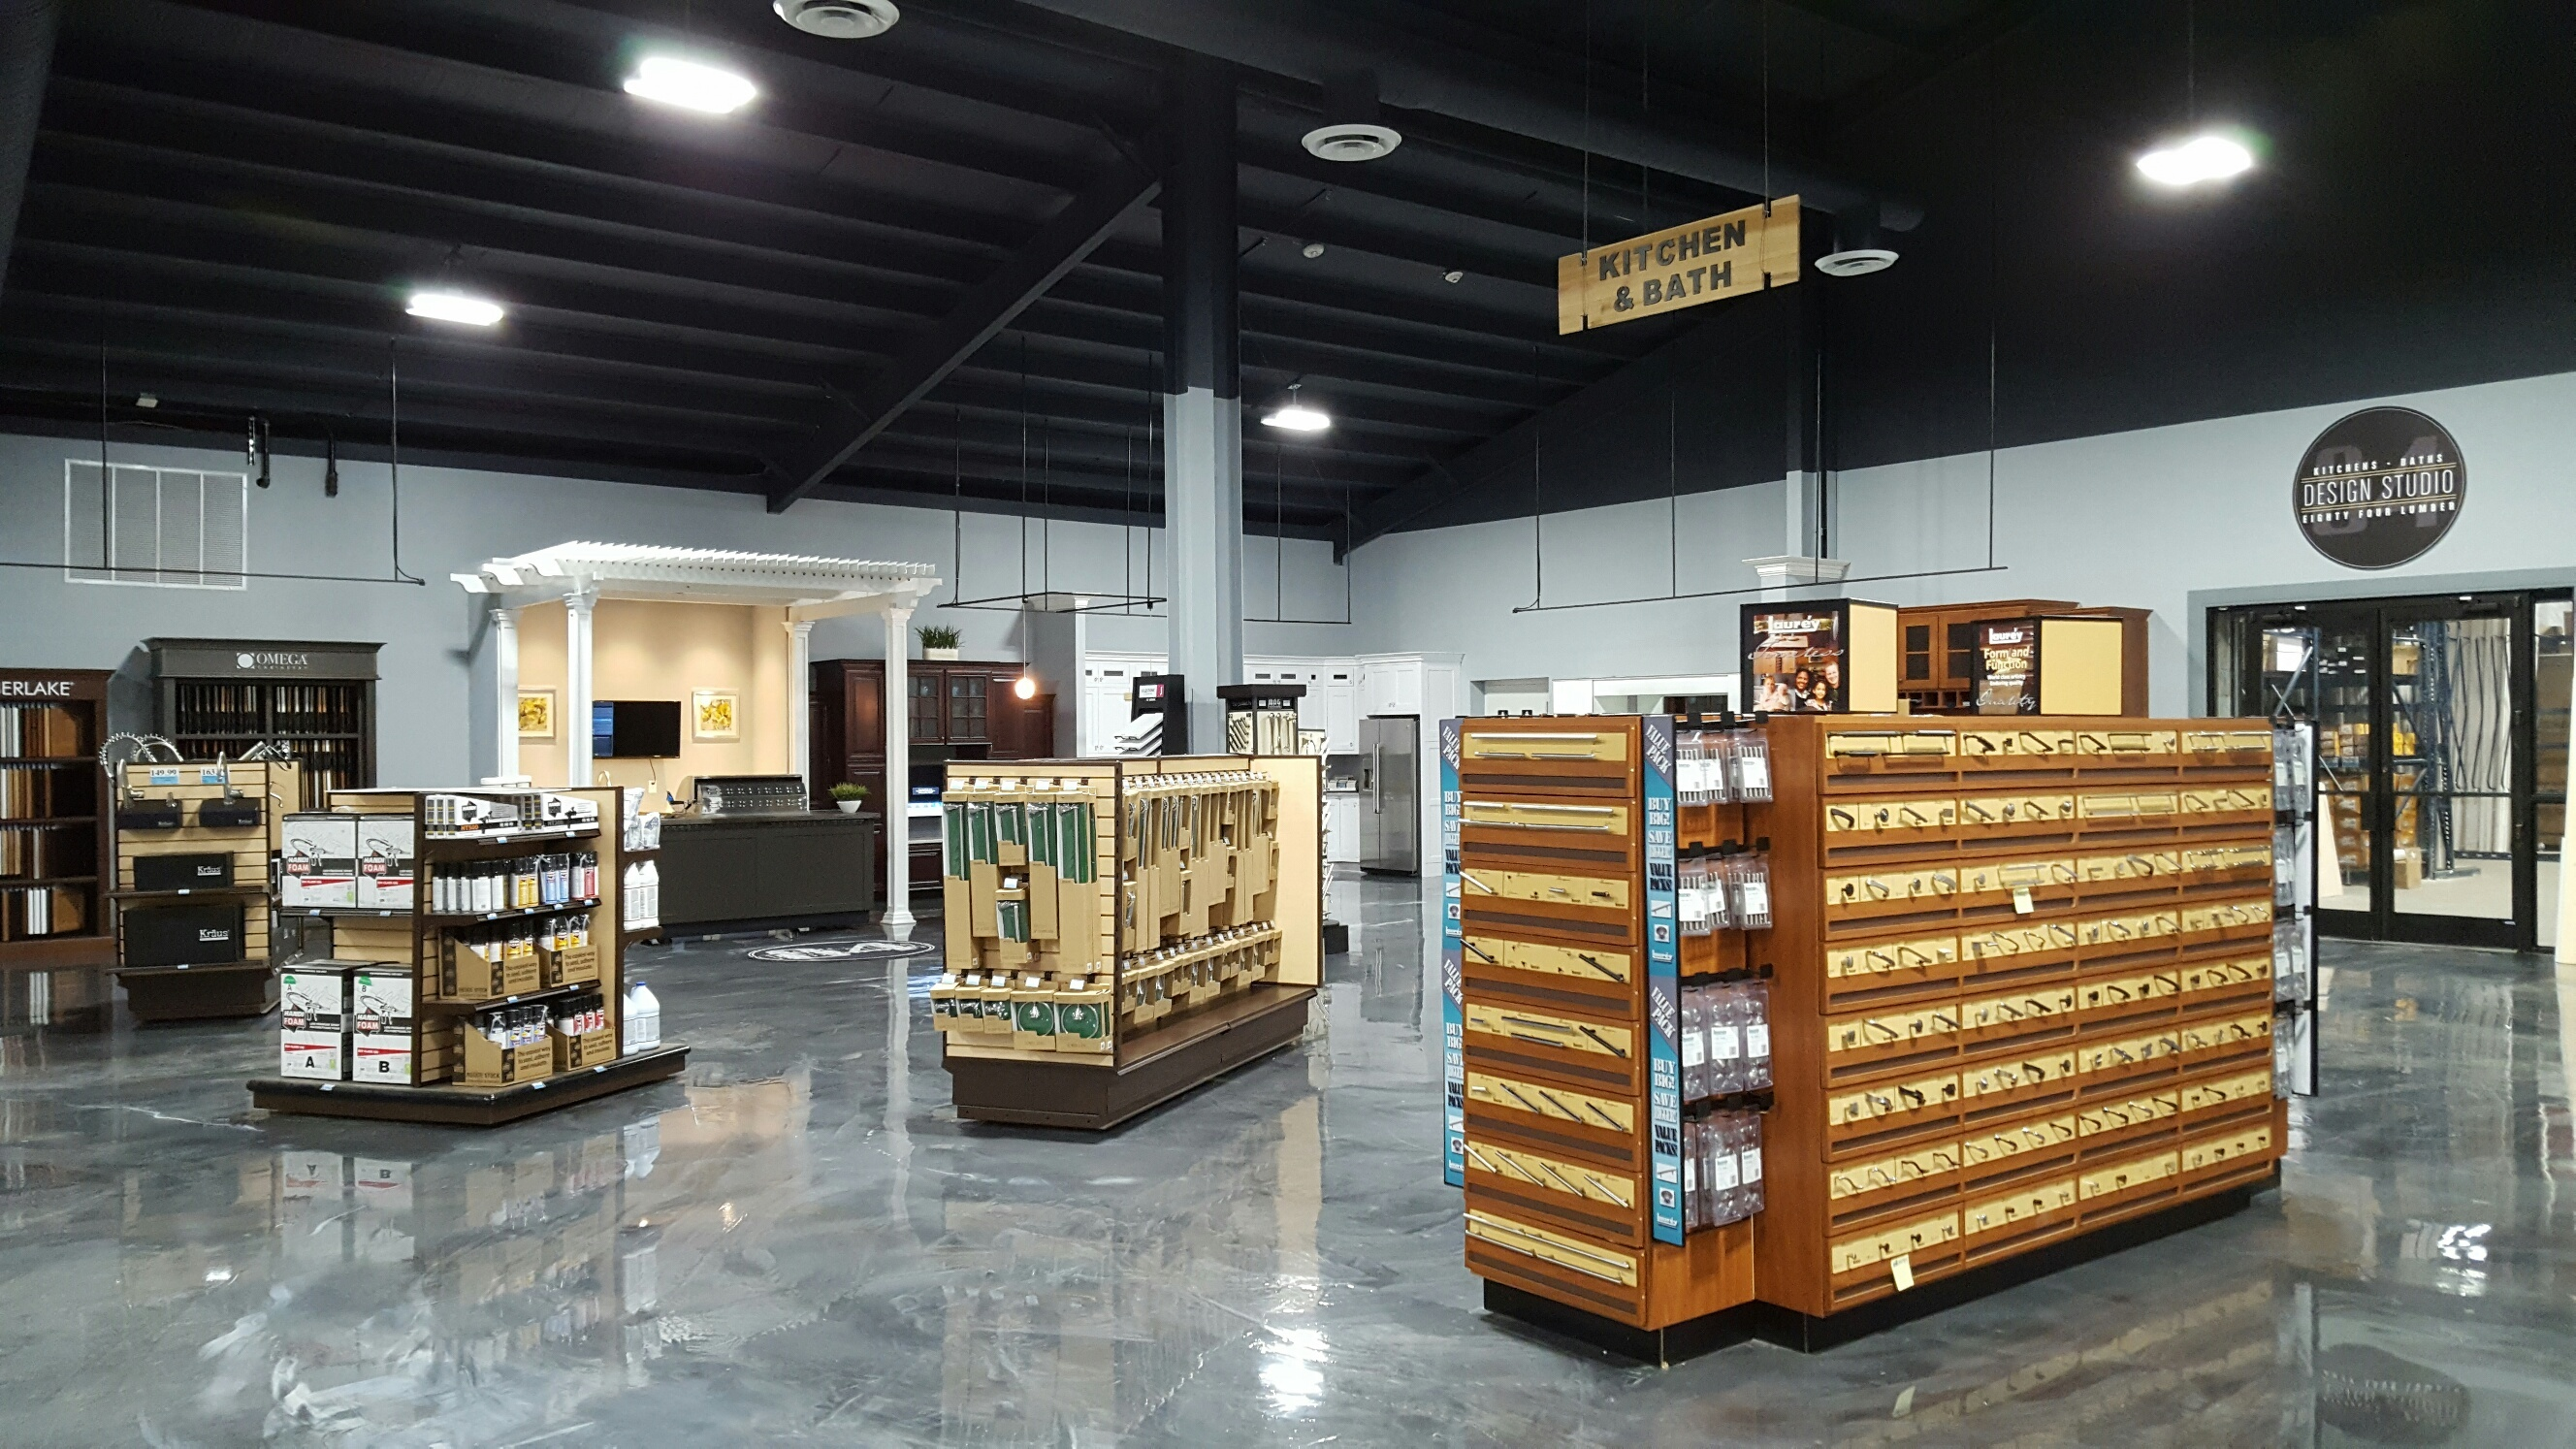 84 Lumber Continues Its 2017 Expansion Plans With Grand Opening Of Riverhead Location